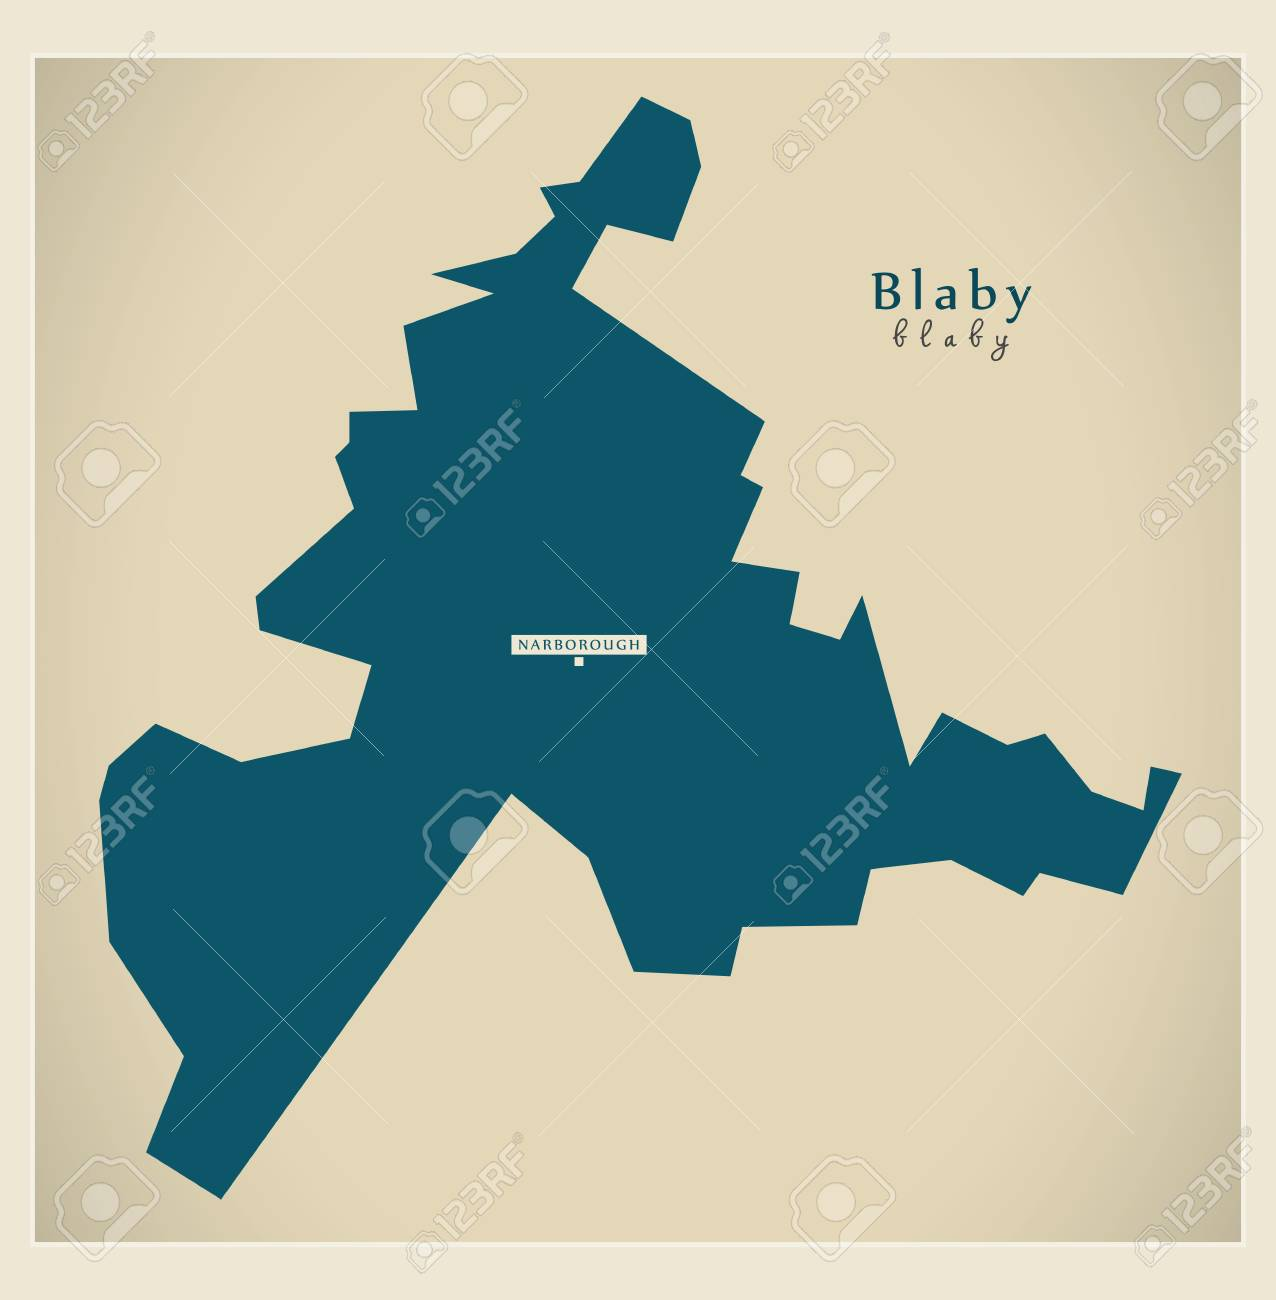 Leicestershire Uk Map.Modern Map Blaby District Of Leicestershire England Uk